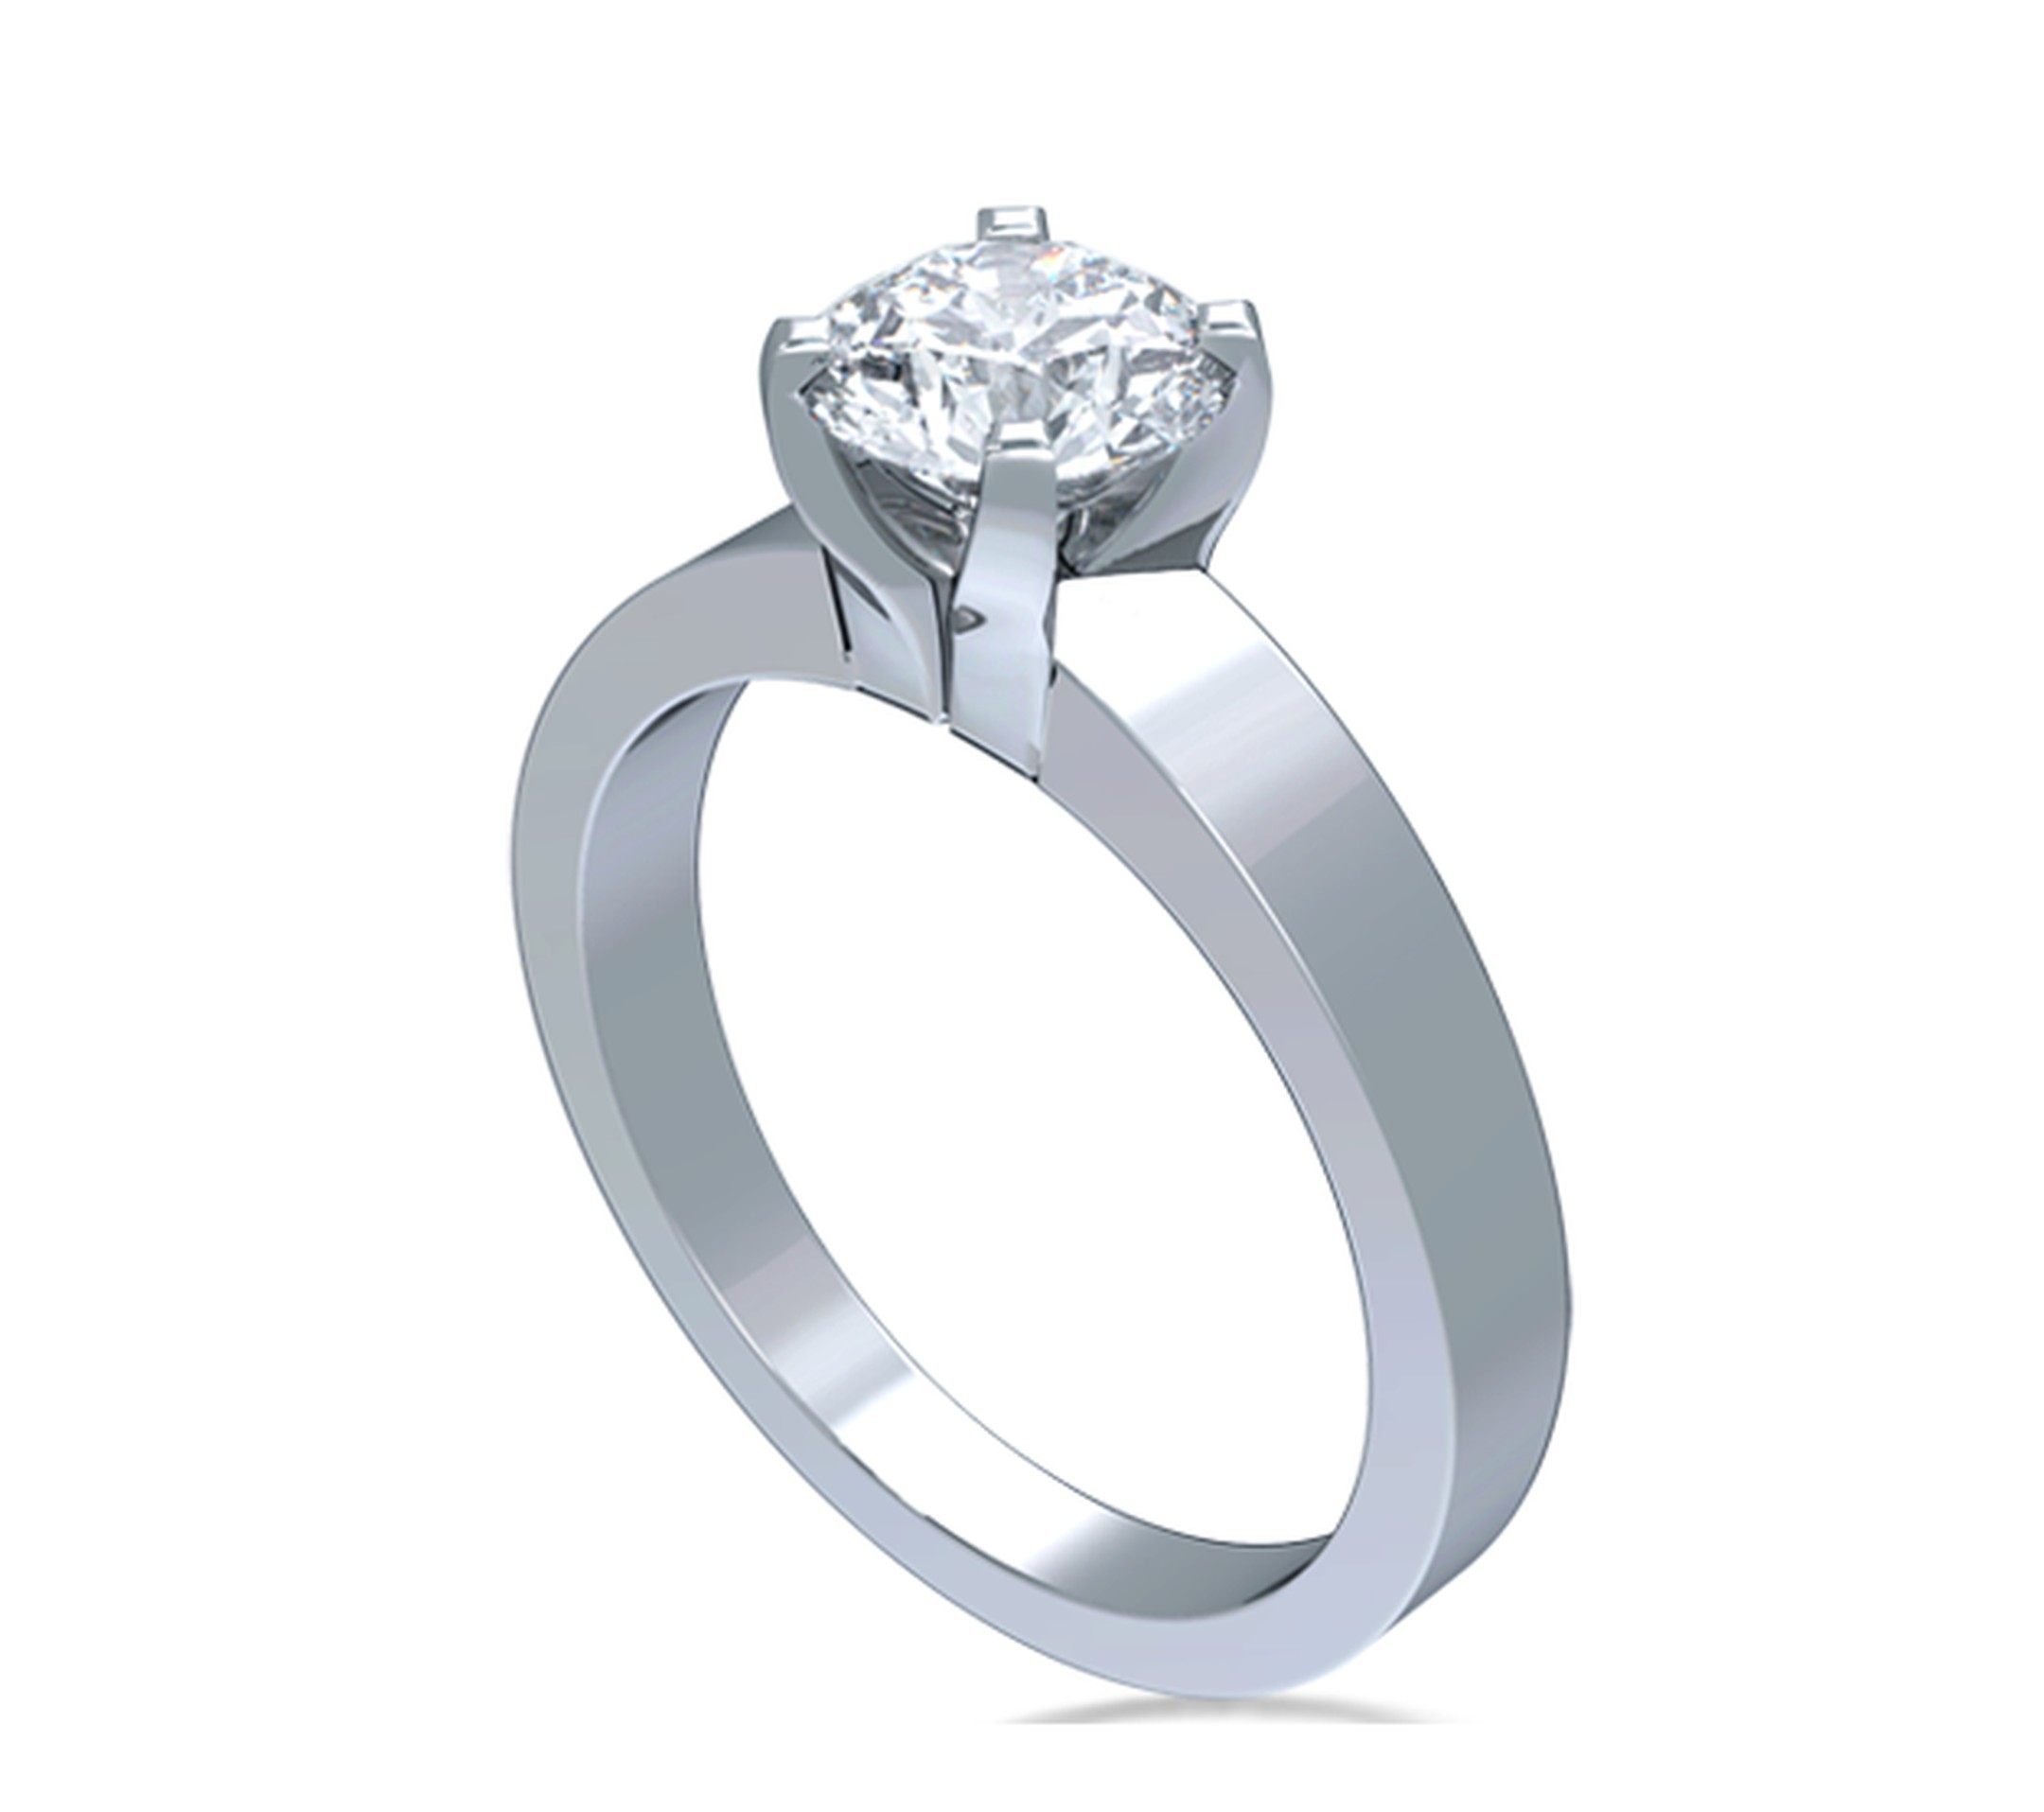 Fair Trade Jewellery Company Star-Sign Solitaire diamond engagement ring in Fairtrade white gold, set with a fully traceable 1.00ct Canadian diamond, viewed side on ($11,995).